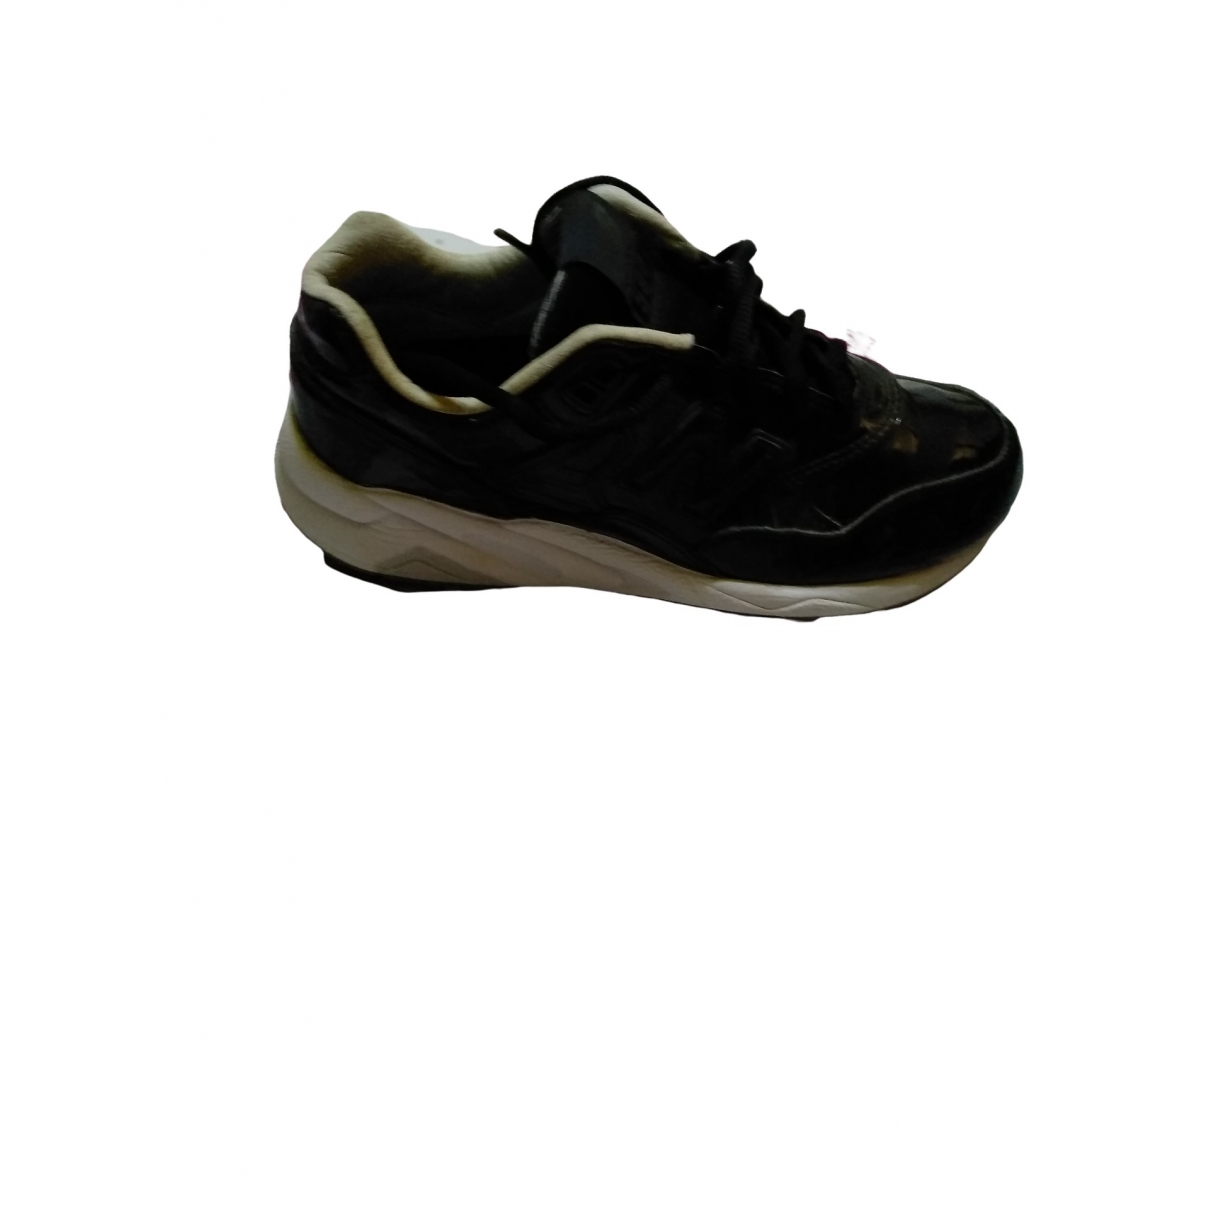 New Balance \N Black Patent leather Trainers for Women 39 EU